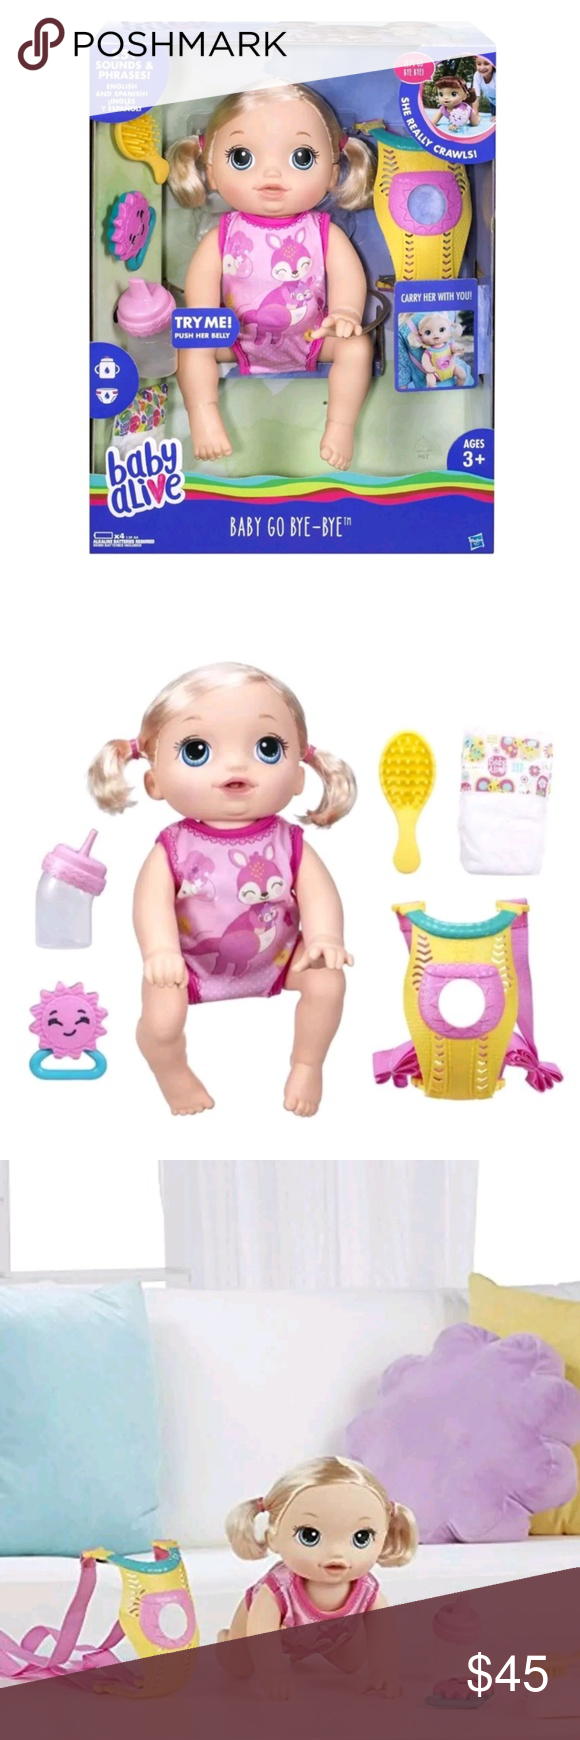 Baby Alive Baby Go Bye Bye Brand New And Sealed In The Box Features She Reacts To Her Rattle Tickles And Speech With Sound Baby Alive Bye Bye Baby Baby